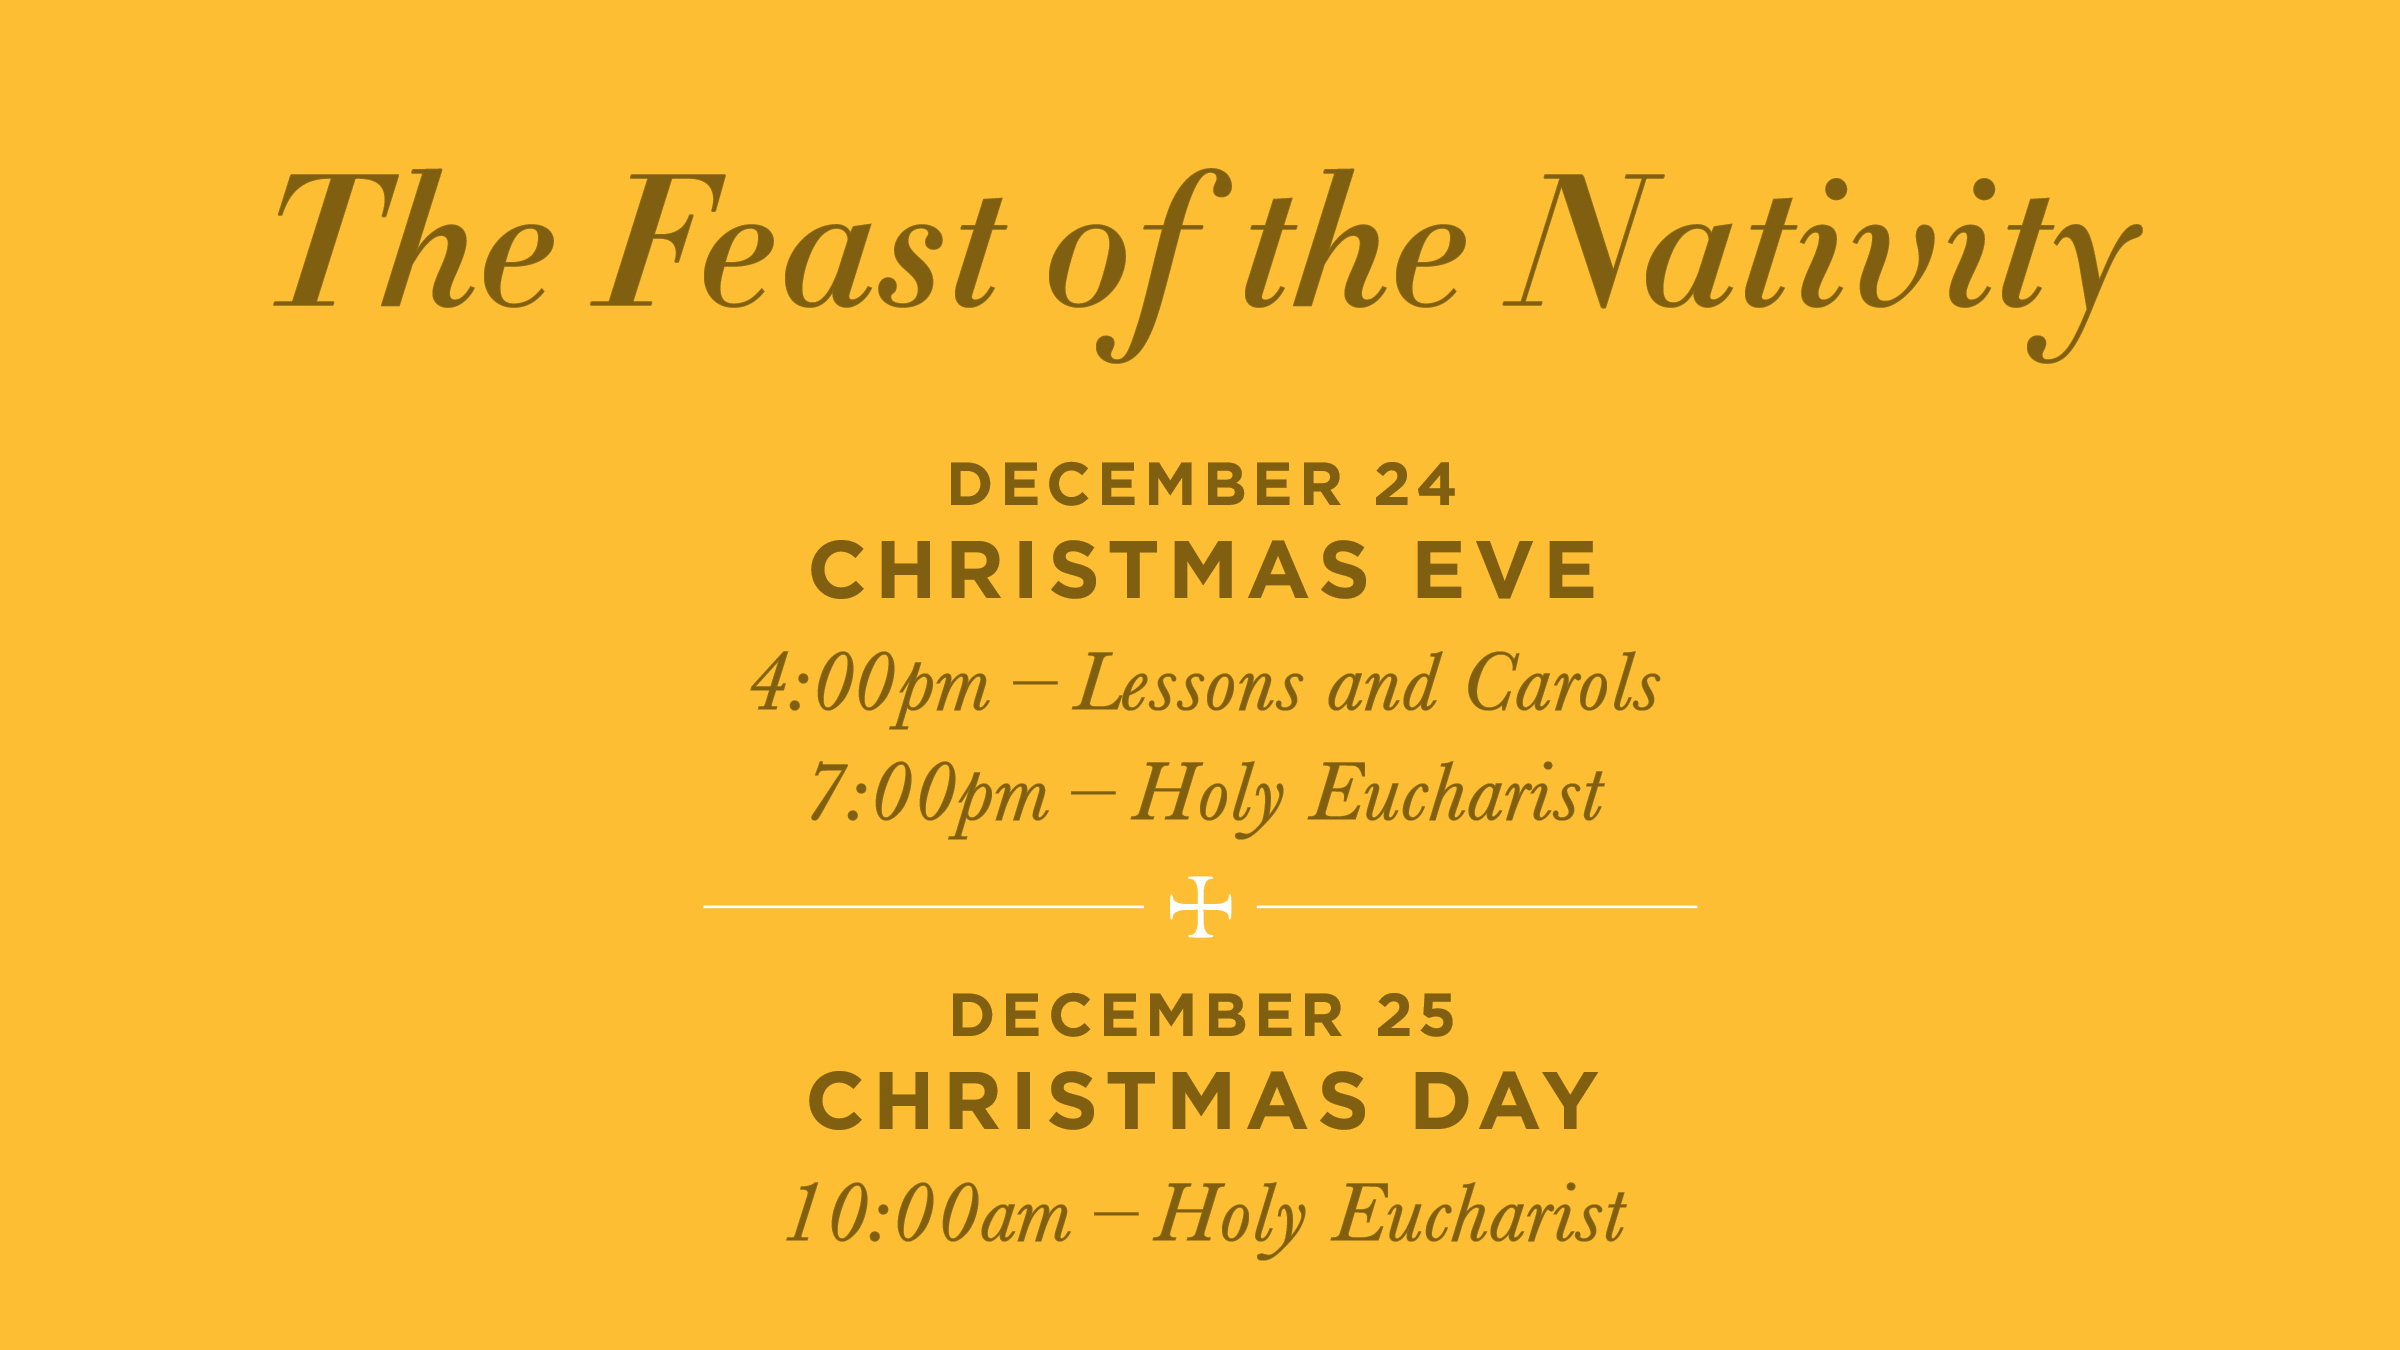 The Feast of the nativity December 24 at 4:00 PM Christmas Eve Lessons & Carols December 24 at 7:00 PM Christmas Eve Eucharist                                                                                                   December 25 at 10:00 AM Christmas Day Eucharist